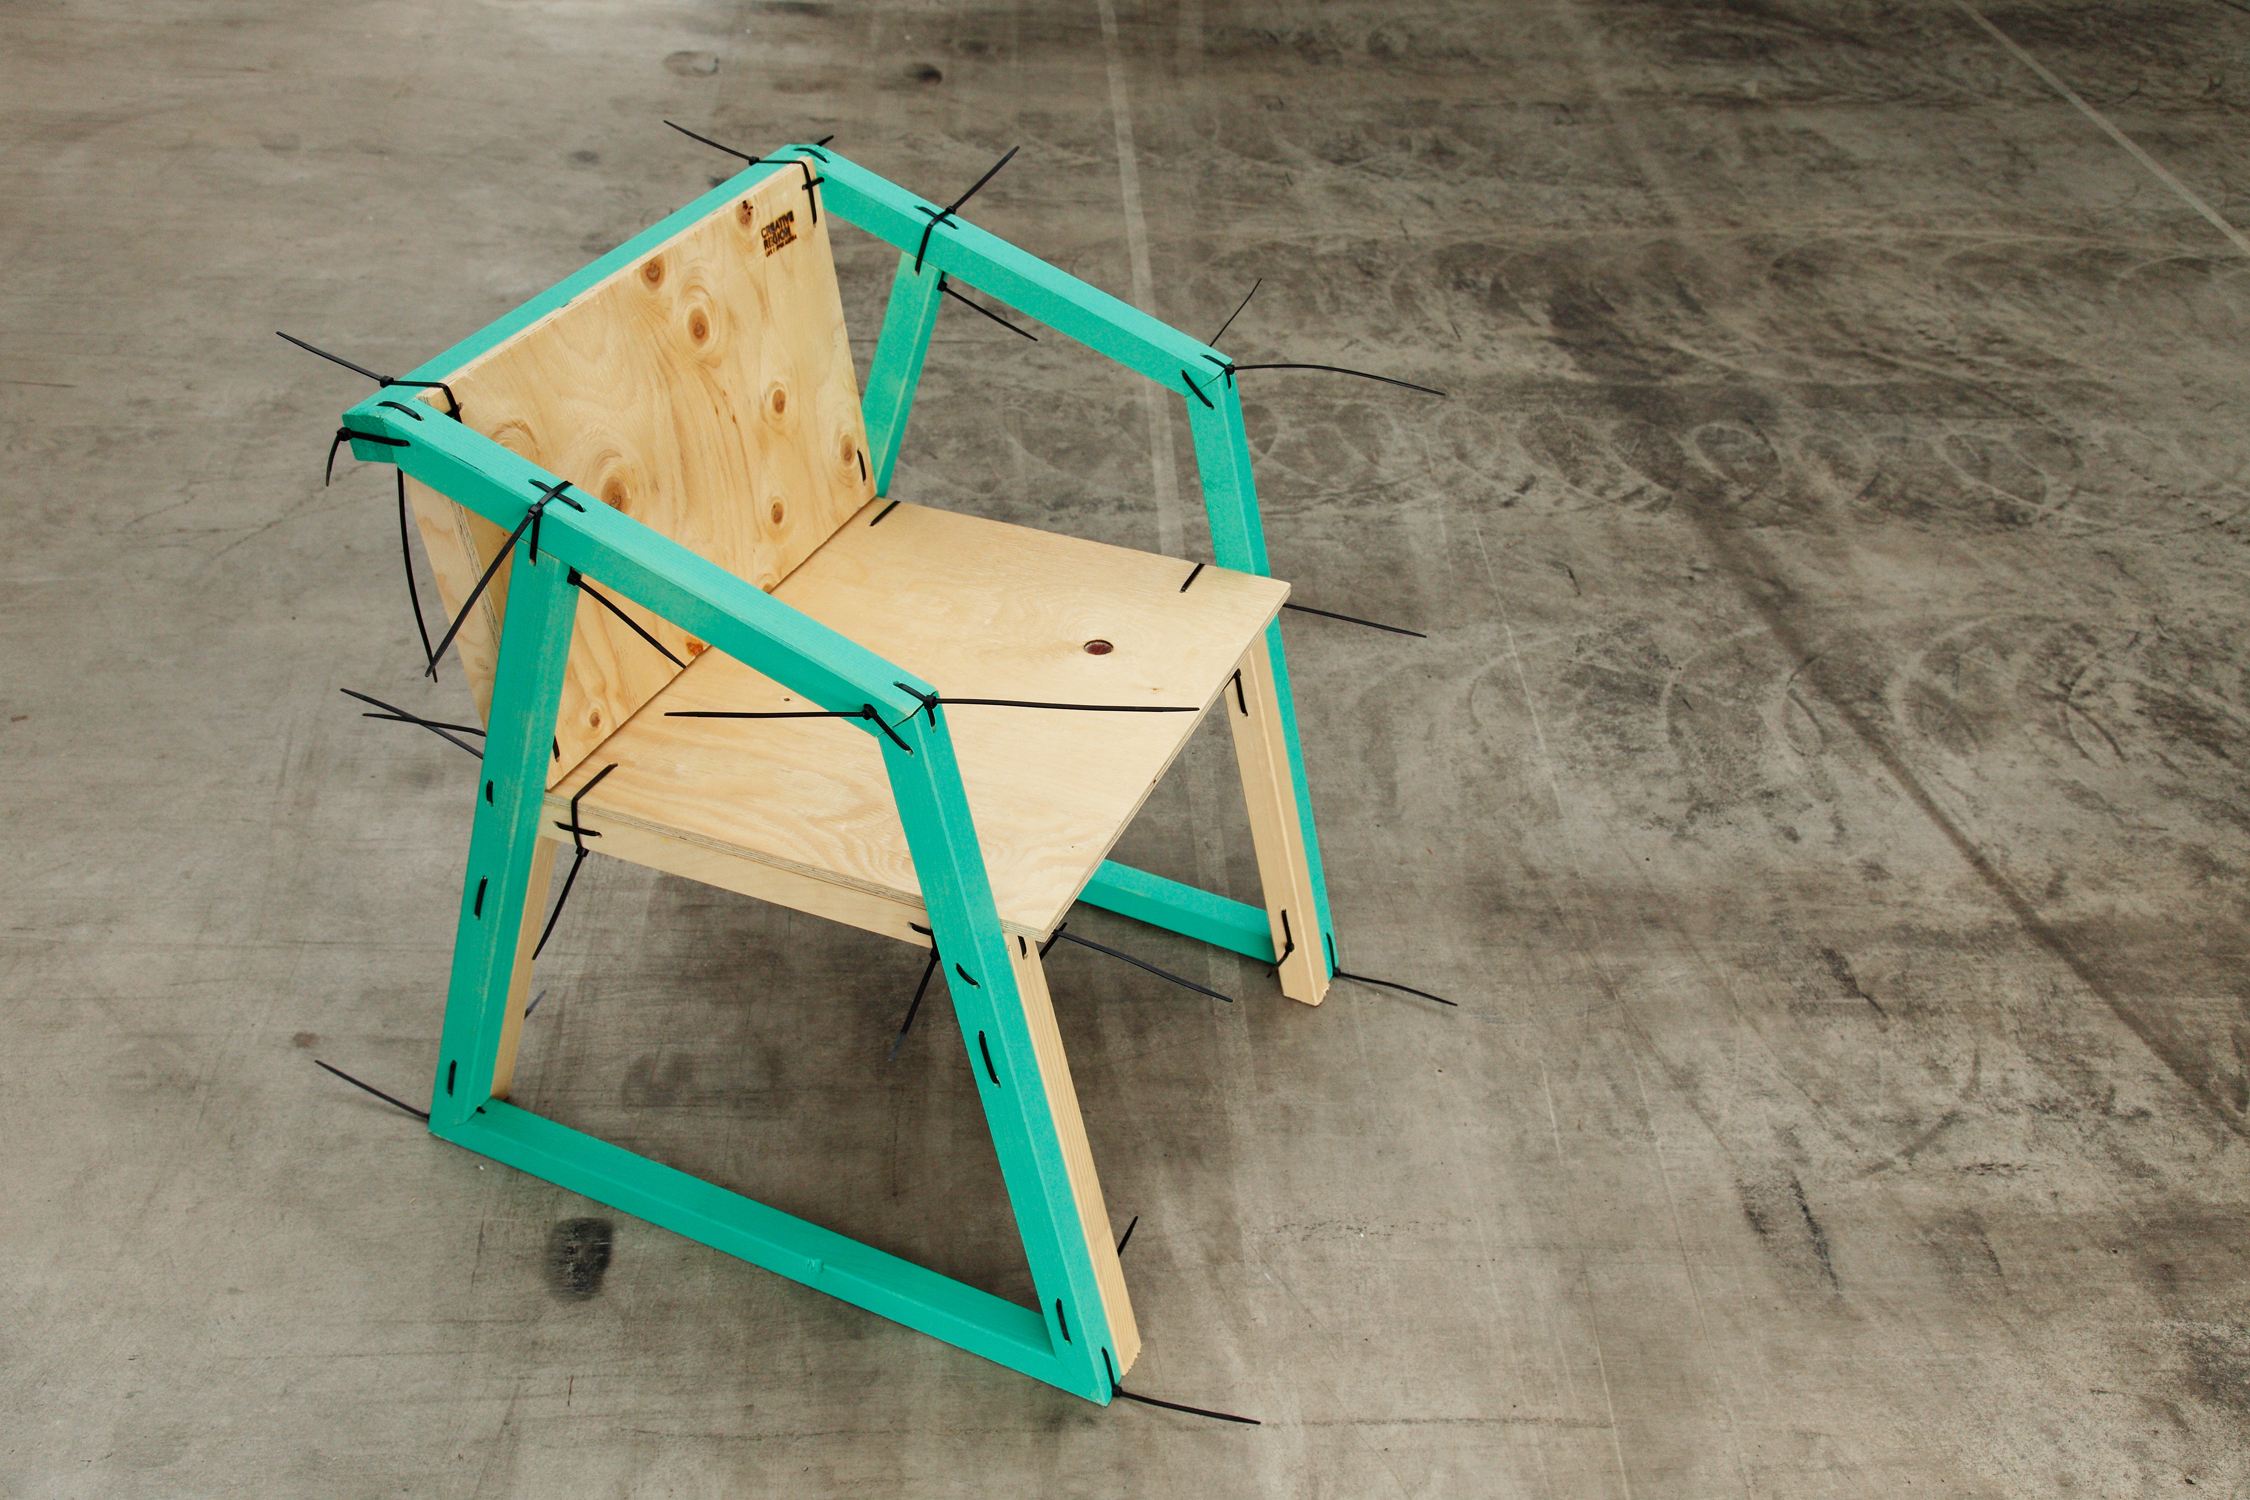 Picture of Familie Binder - Chair by Michael Holzer & Magdalena Reiter